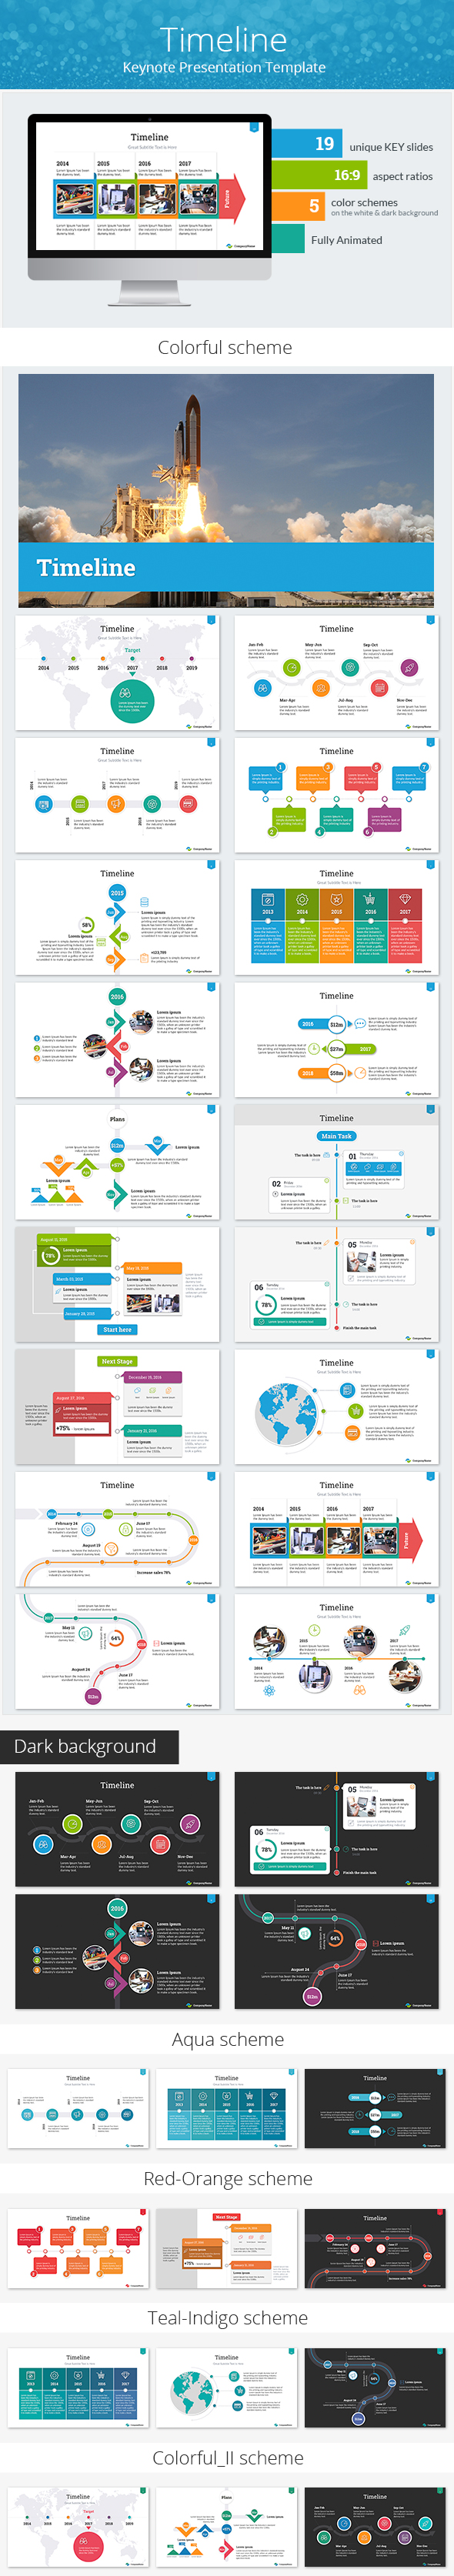 Timeline Keynote Presentation Template By SanaNik GraphicRiver - Timeline template keynote